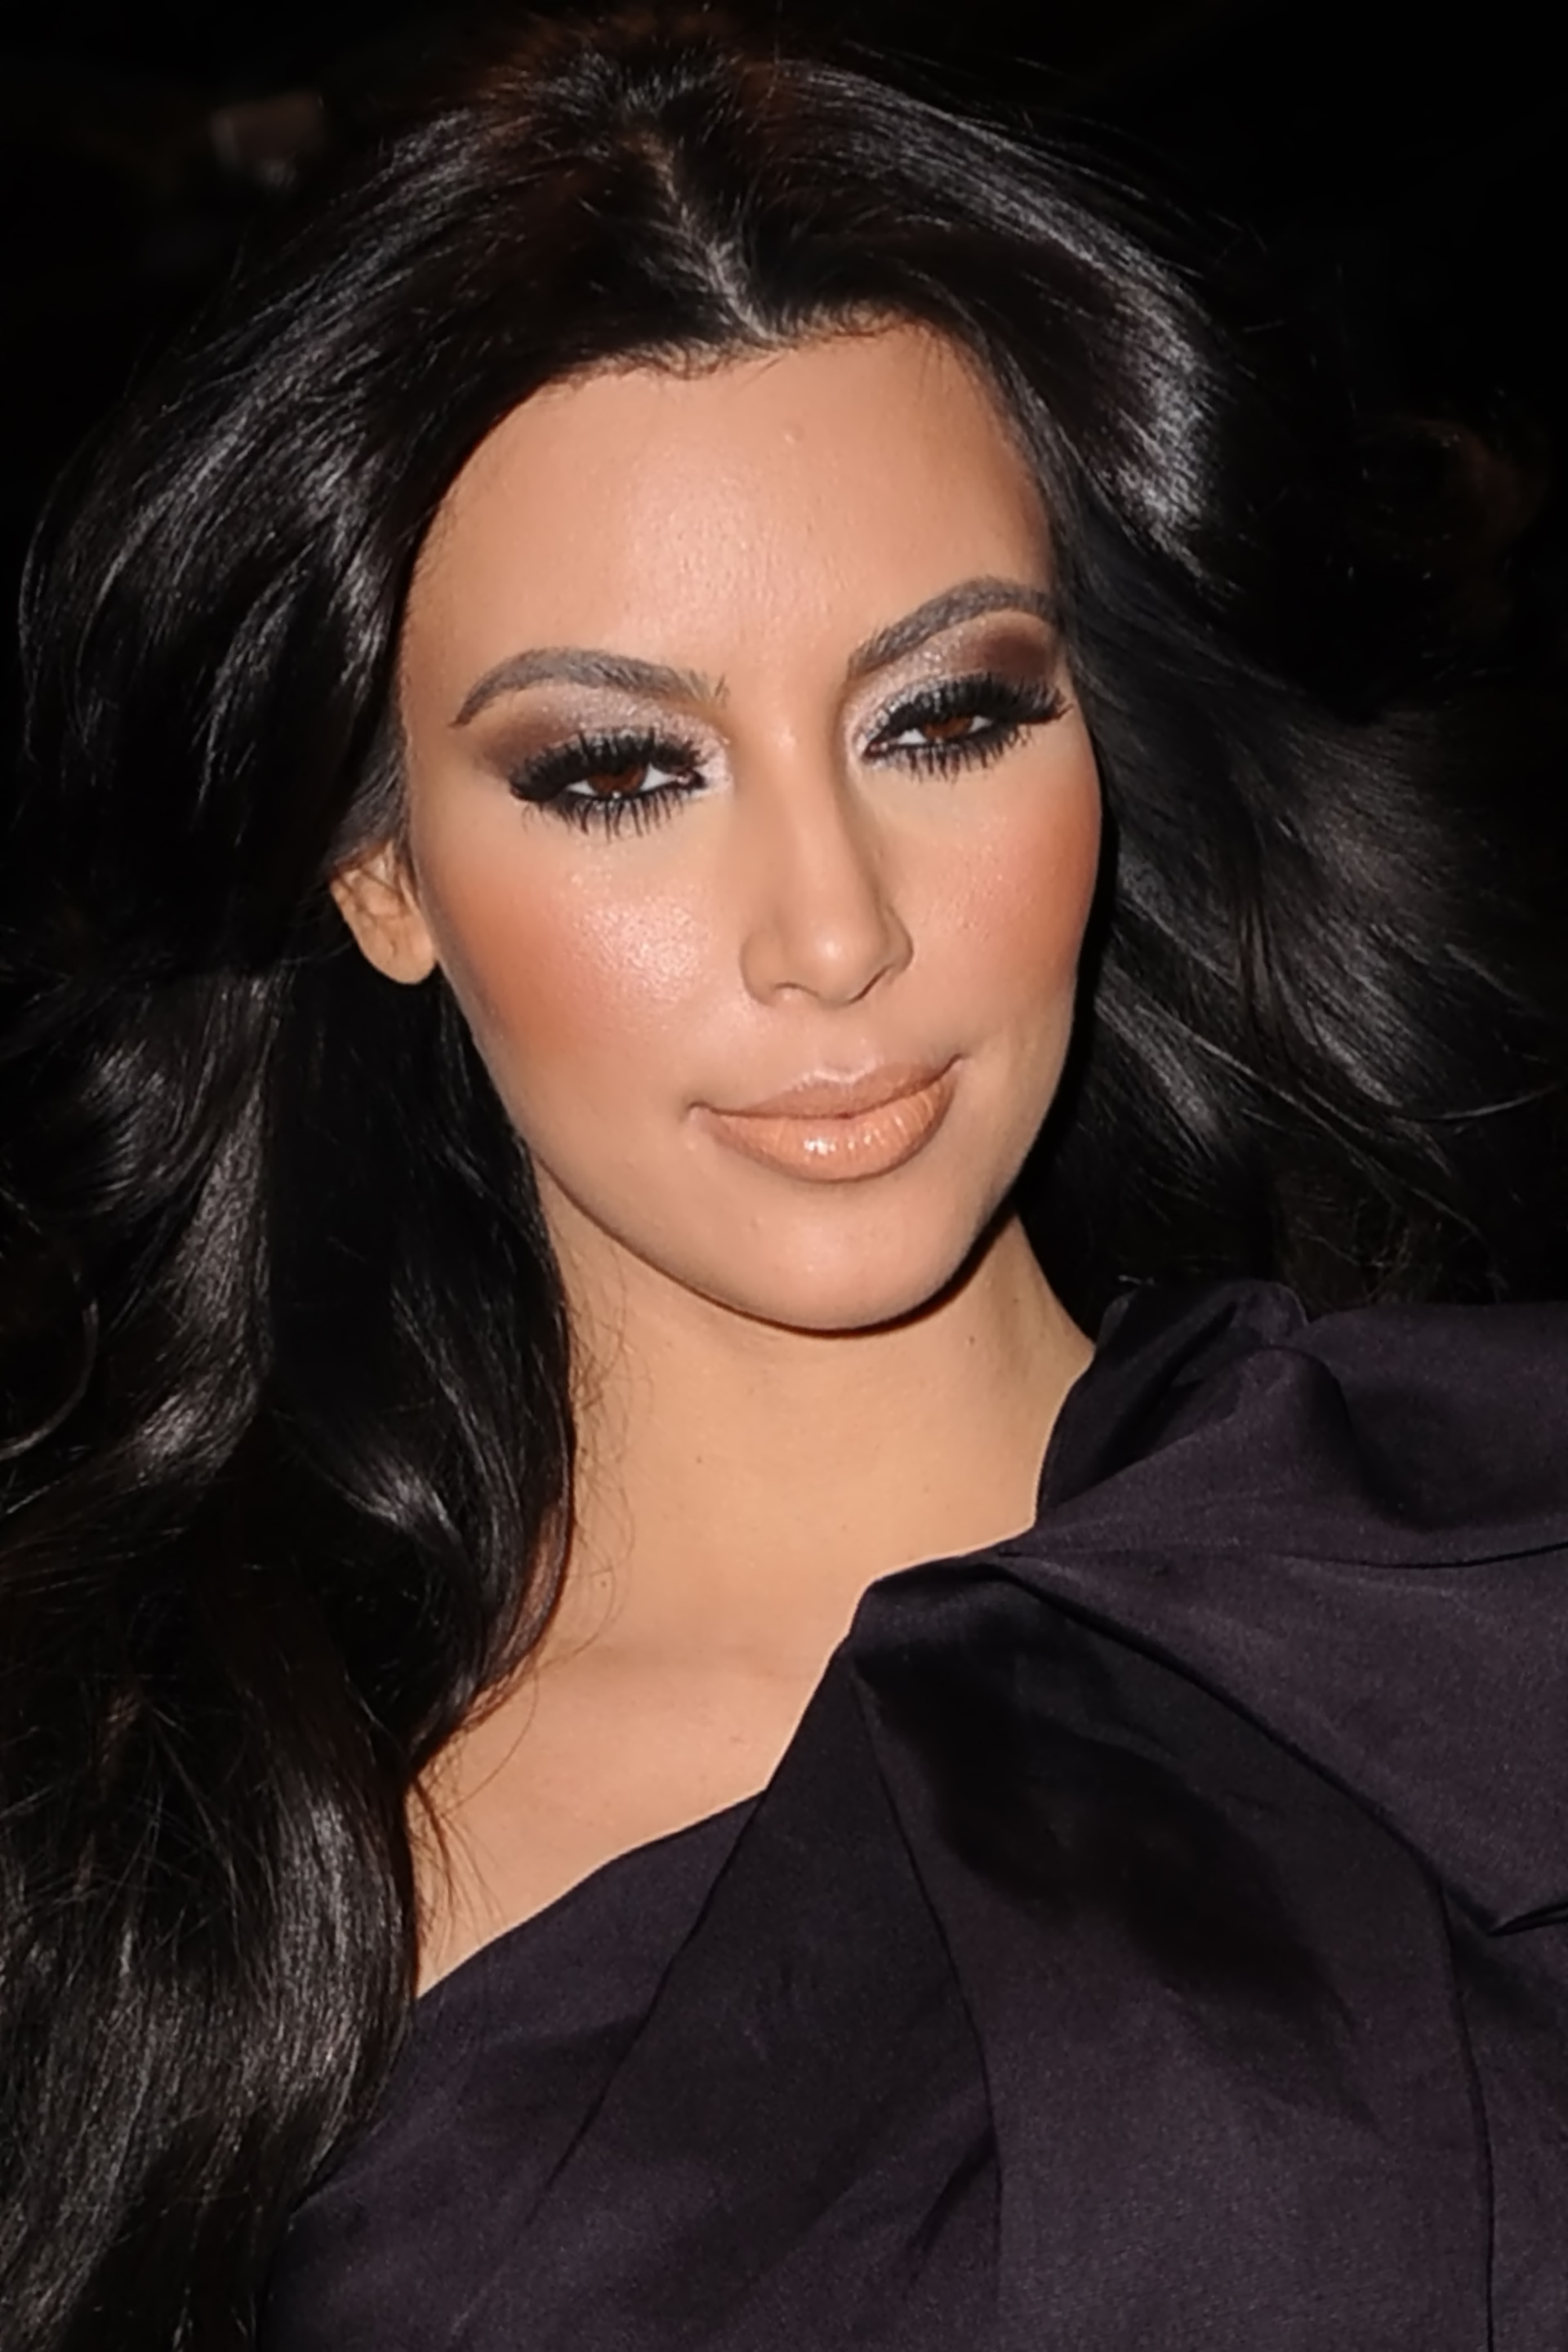 Kim Kardashian Iphone Wallpaper Kim kardashian 1 1920x2880